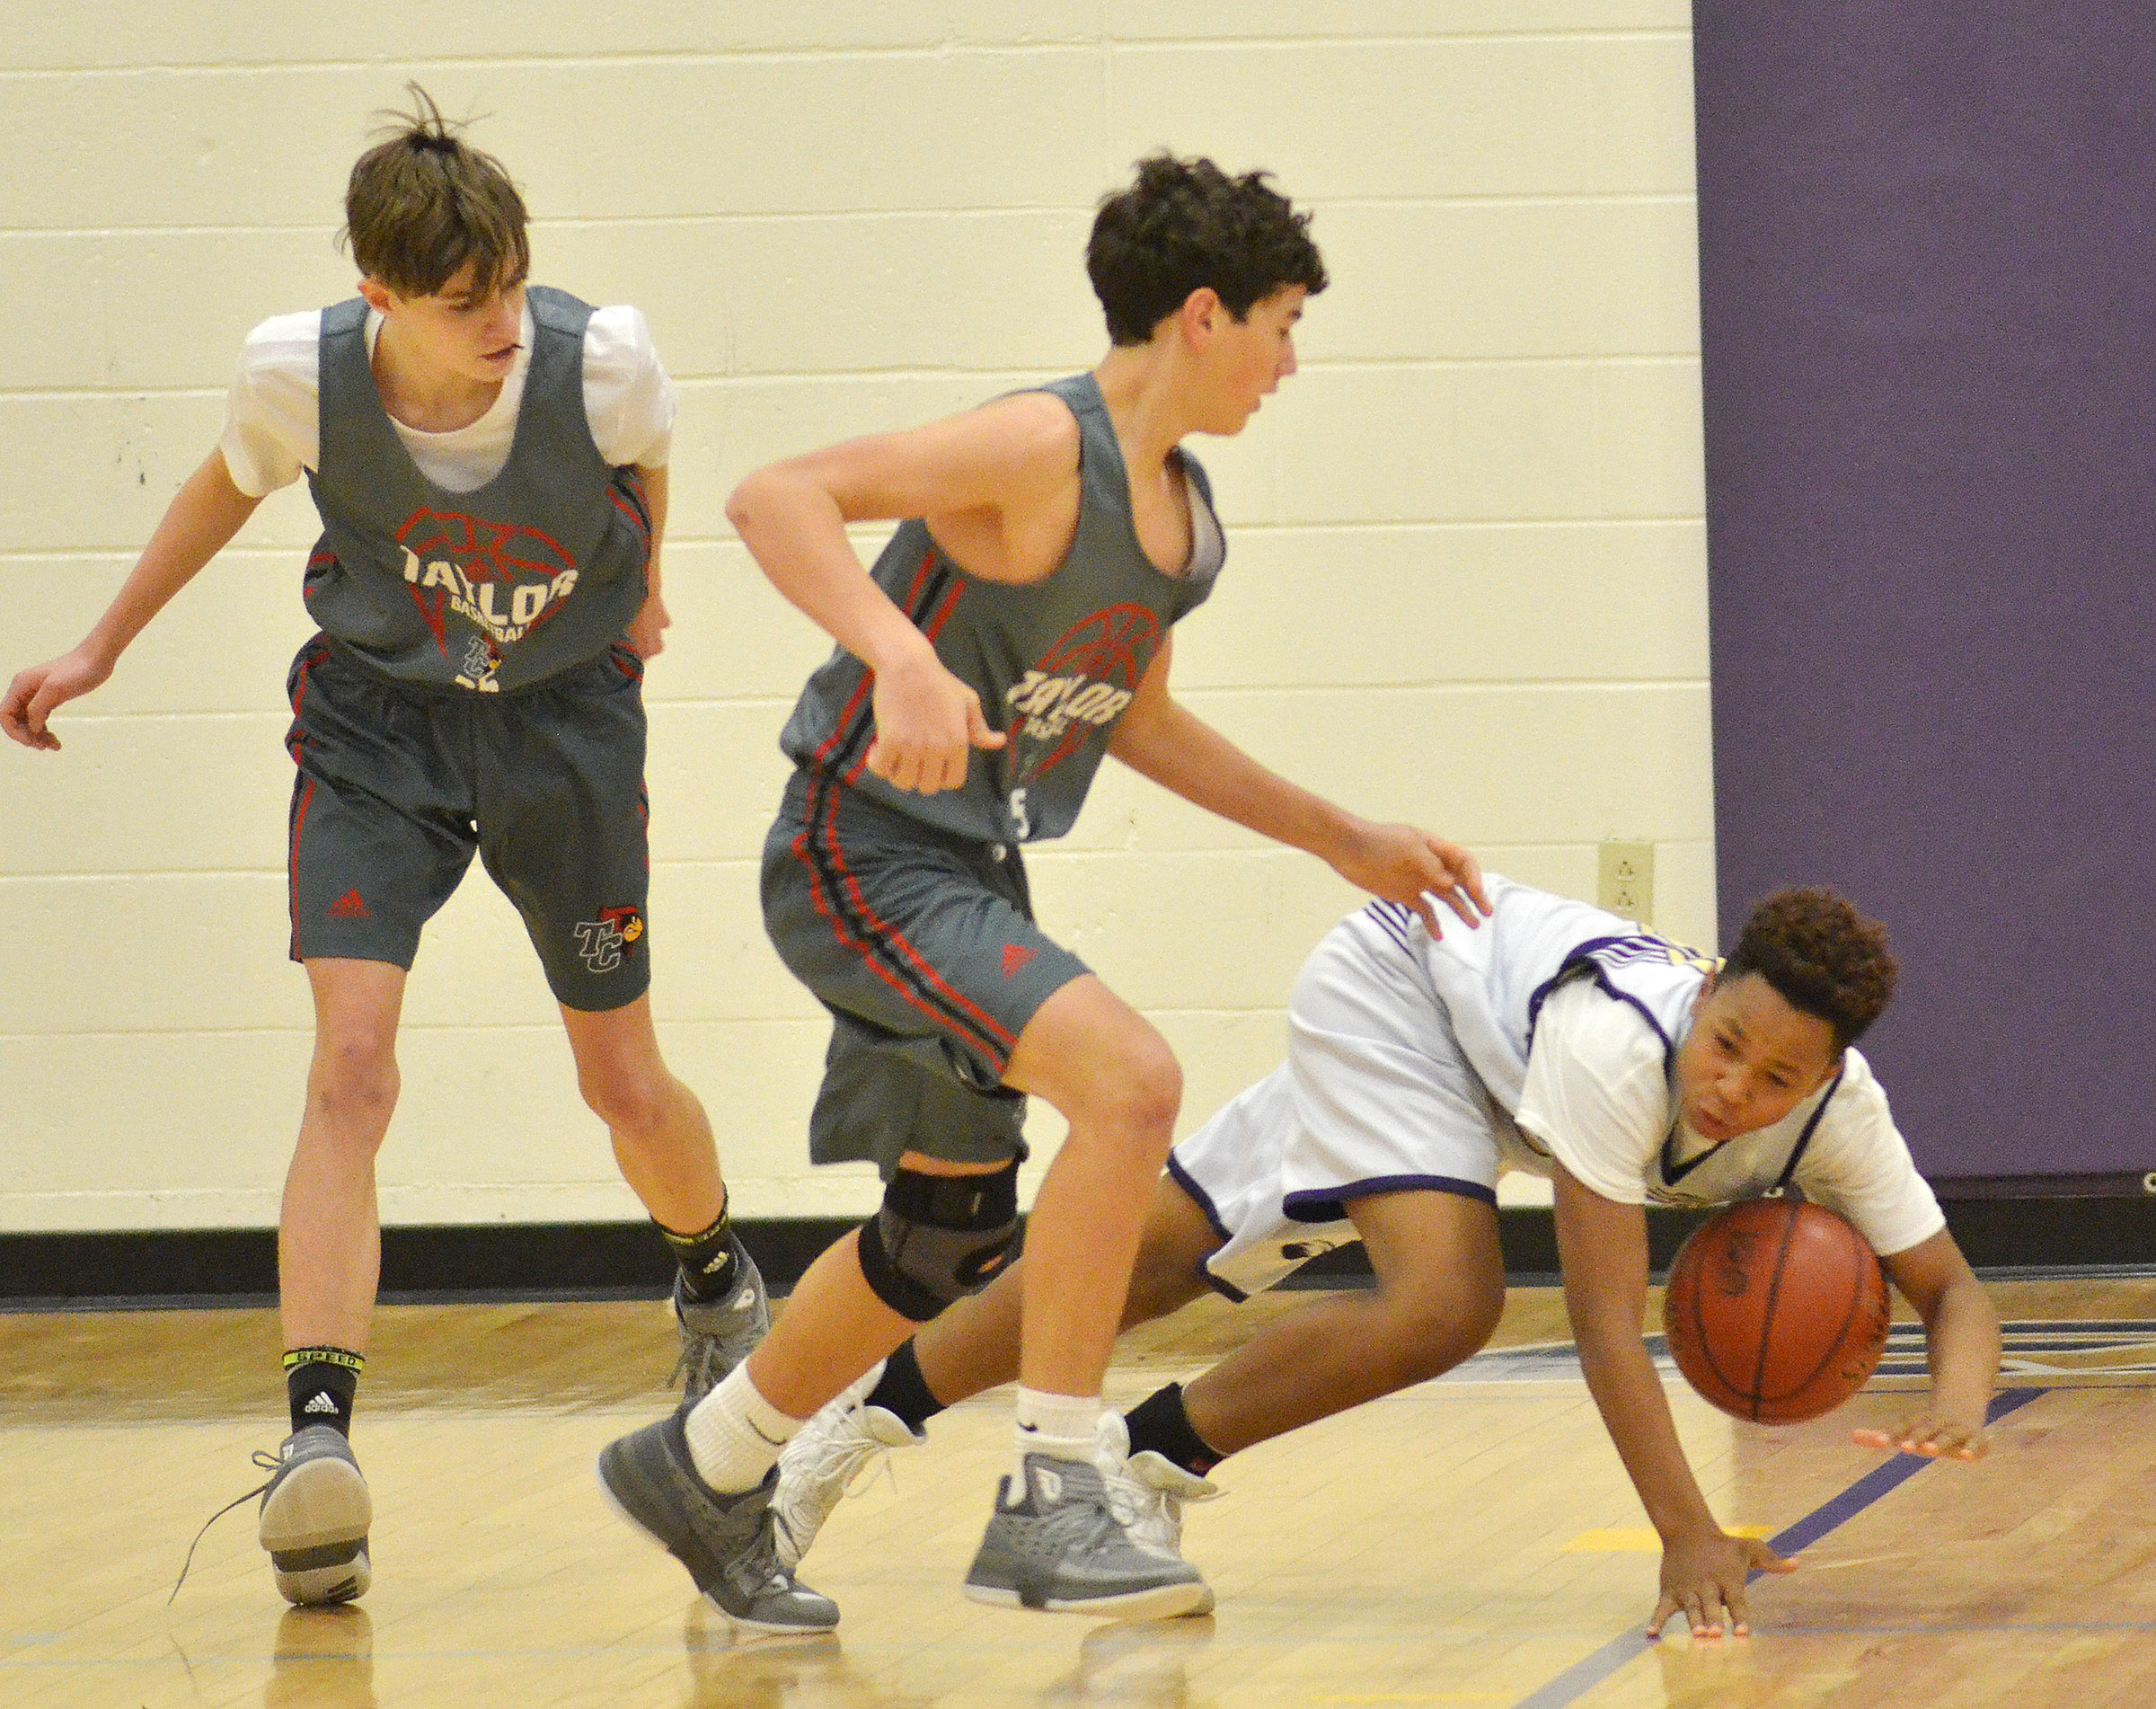 CMS seventh-grader Deondre Weathers lands on the floor as he protects the ball.